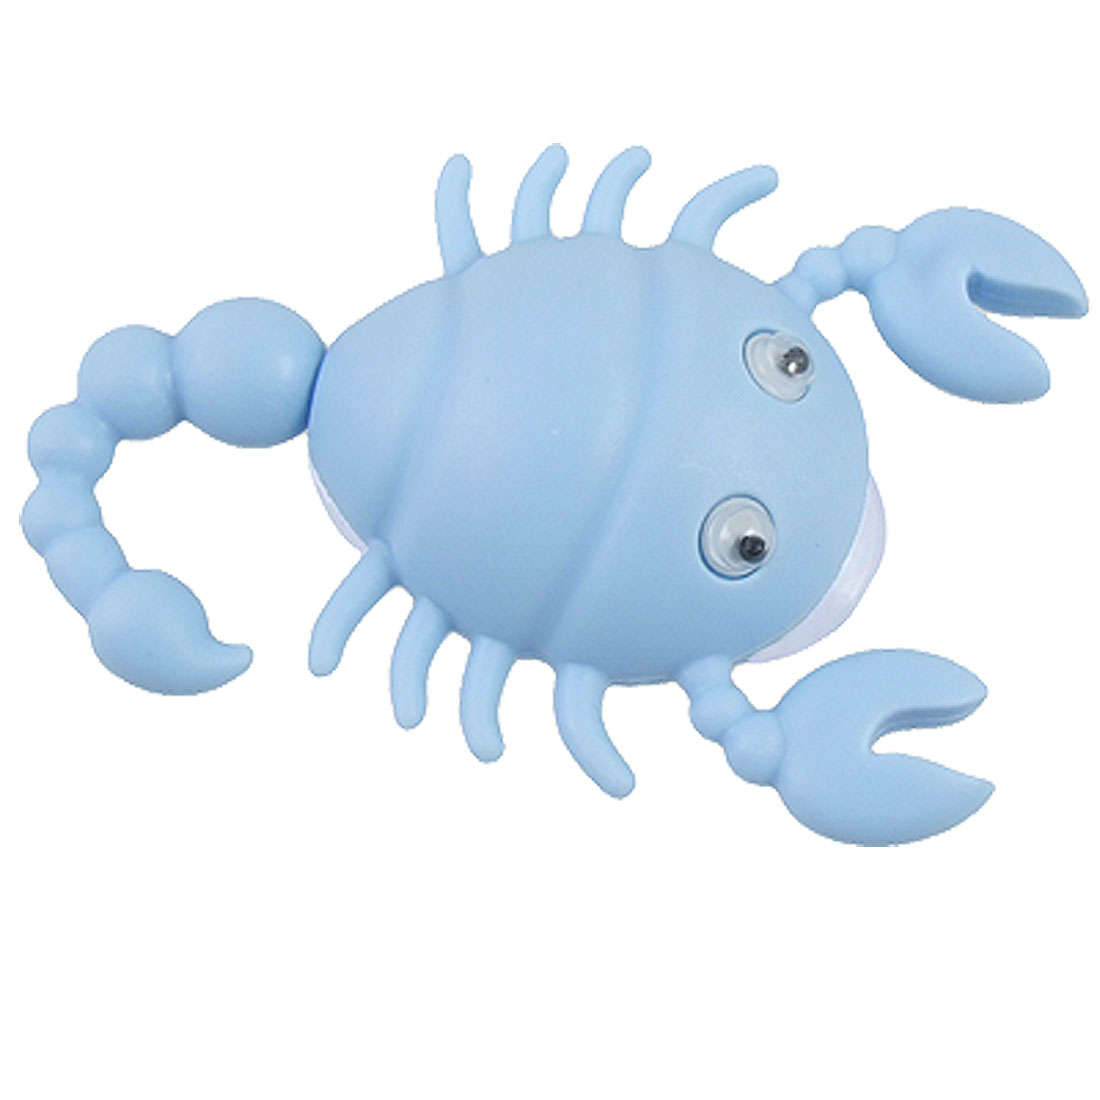 Art Wall Decor Blue Scorpion Design Suction Cup Hook